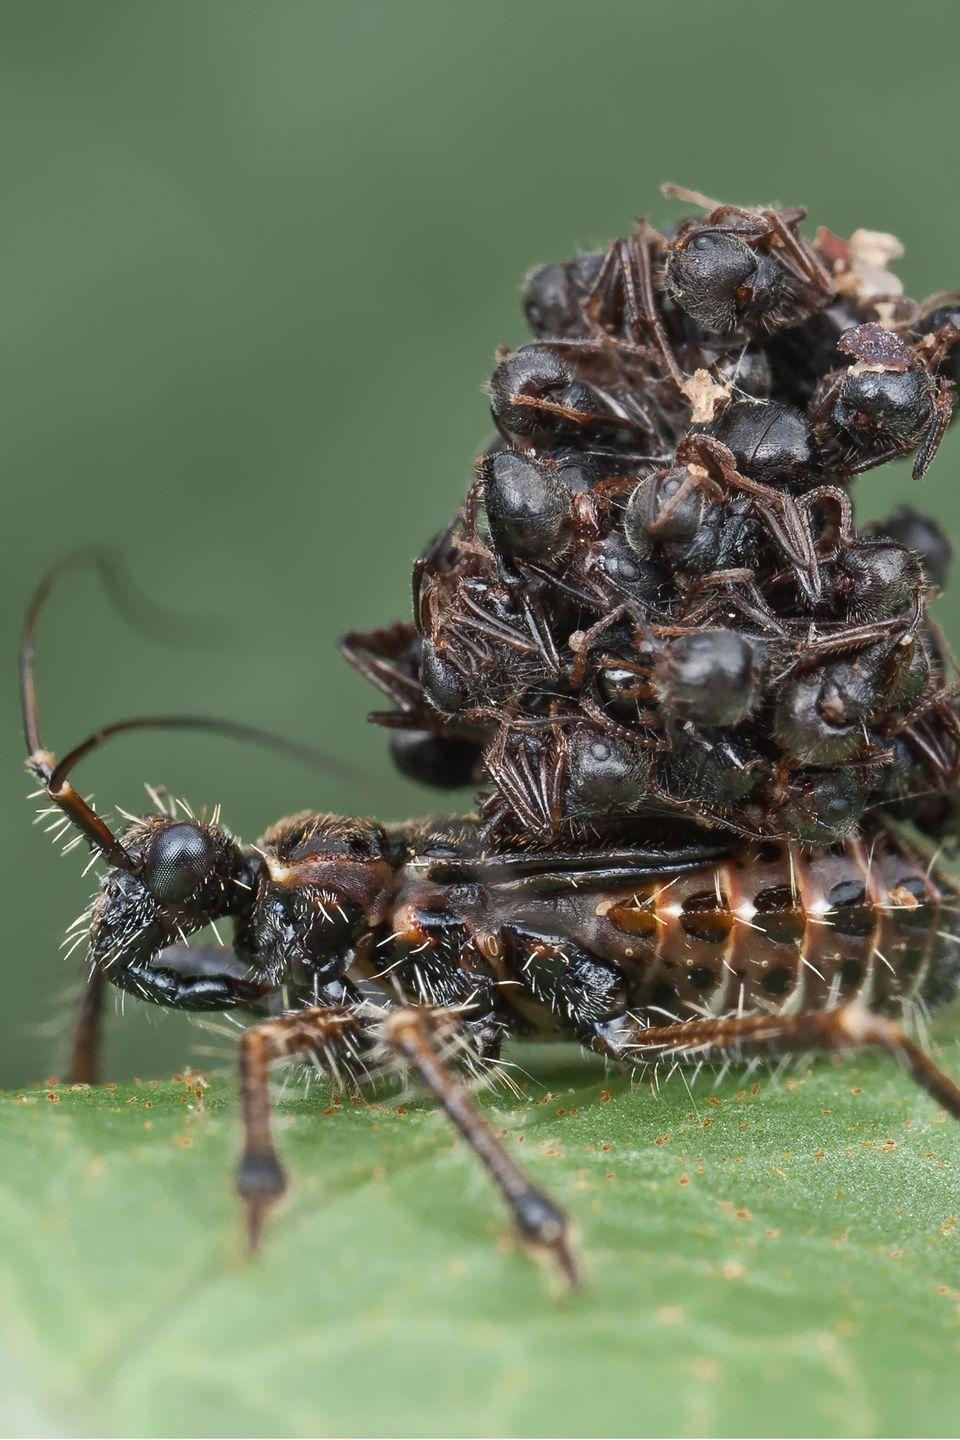 <p>As if their name didn't give them away, assassin bugs of Malaysia are the ultimate predators. They're known to hunt ants, and then turn the bodies of their victims' exoskeletons into outerwear. (They do this after liquefying and consuming the insides of the ants.) Then they use their new armor to confuse future predators. Brilliant.</p>